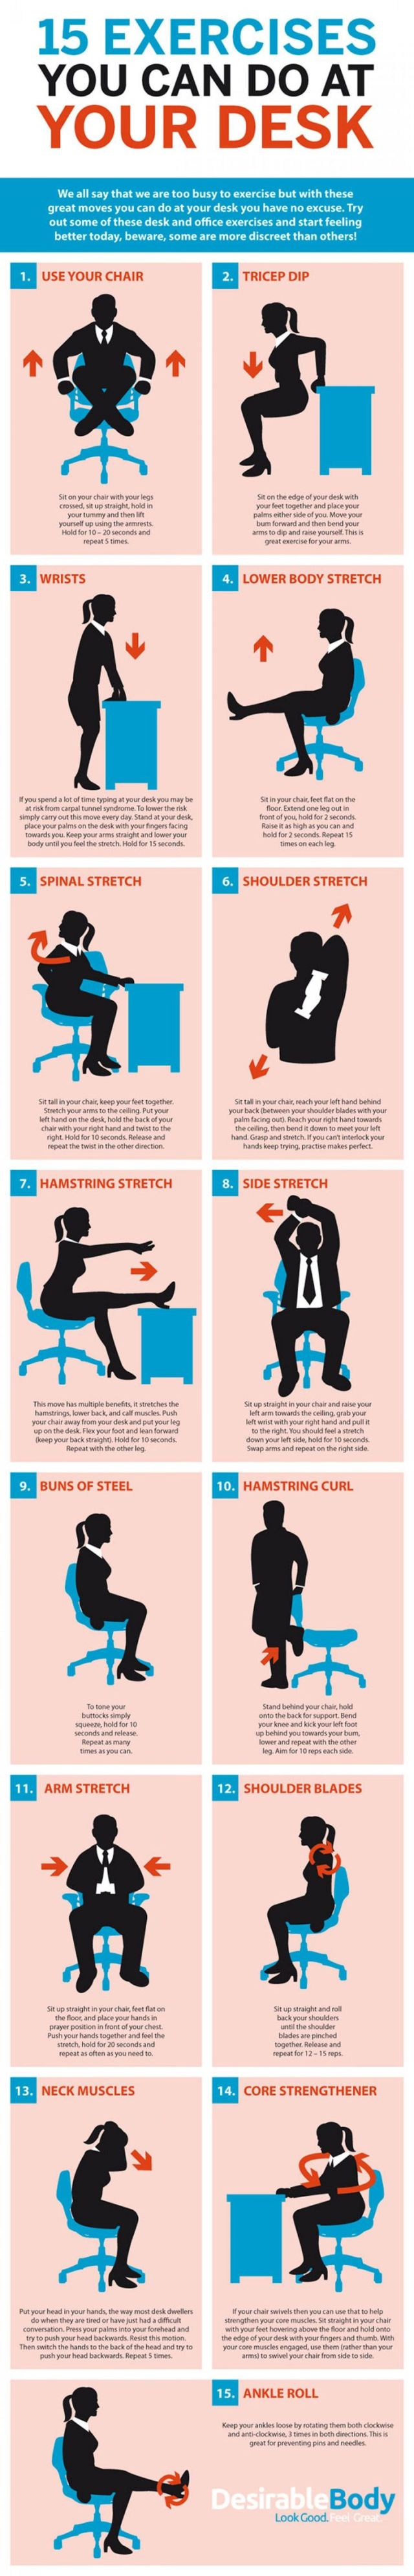 desk exercises 2